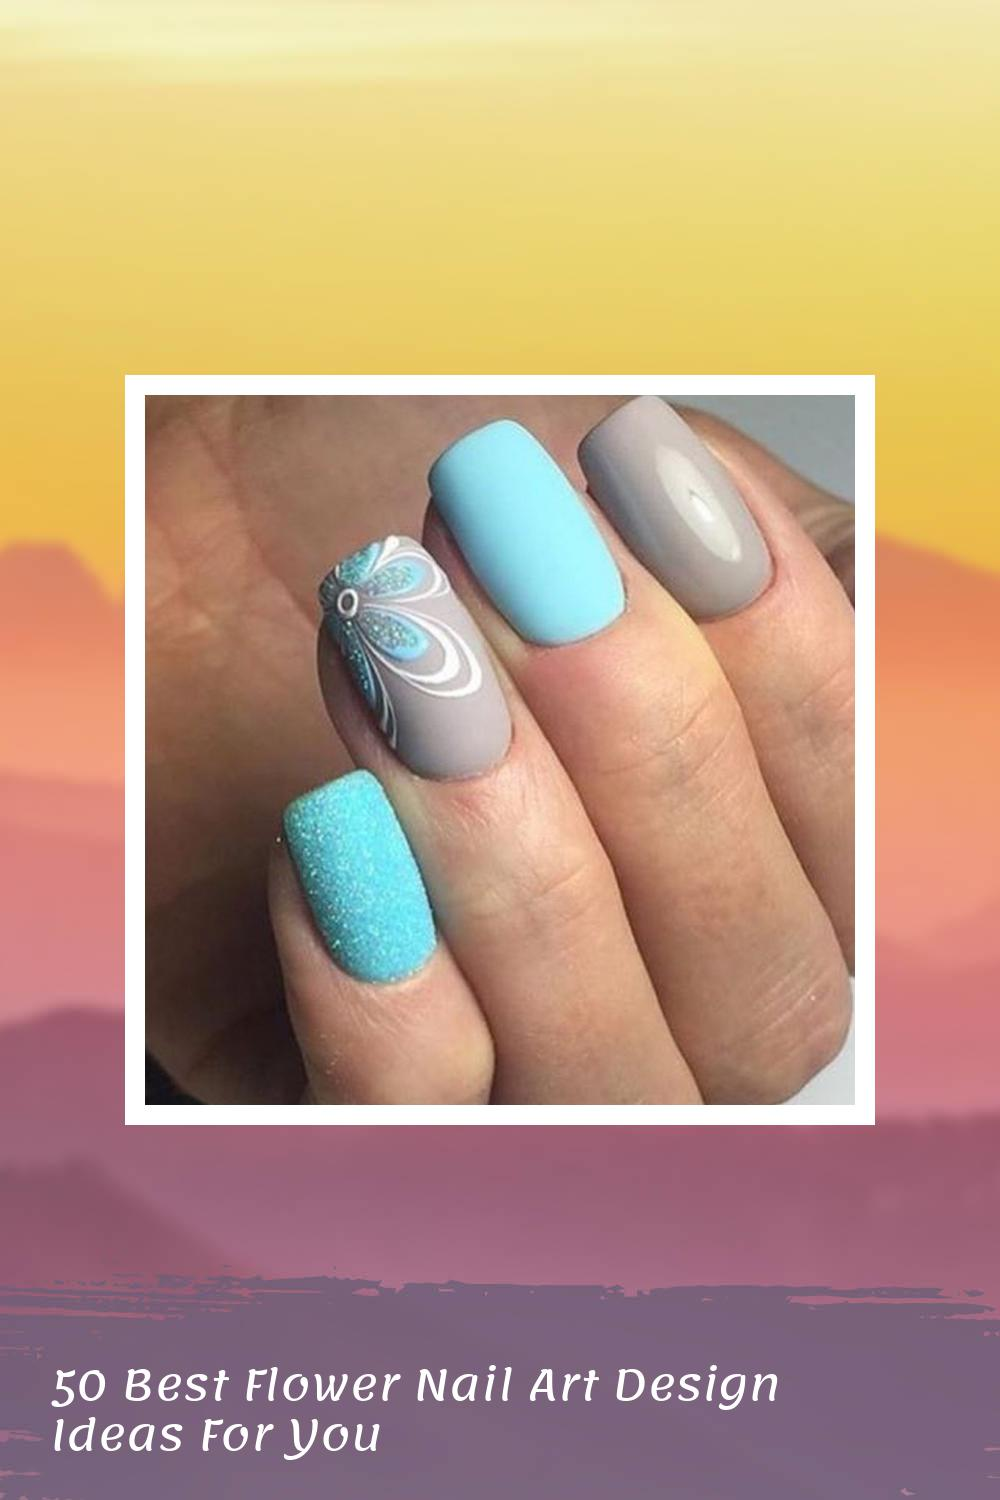 50 Best Flower Nail Art Design Ideas For You 1